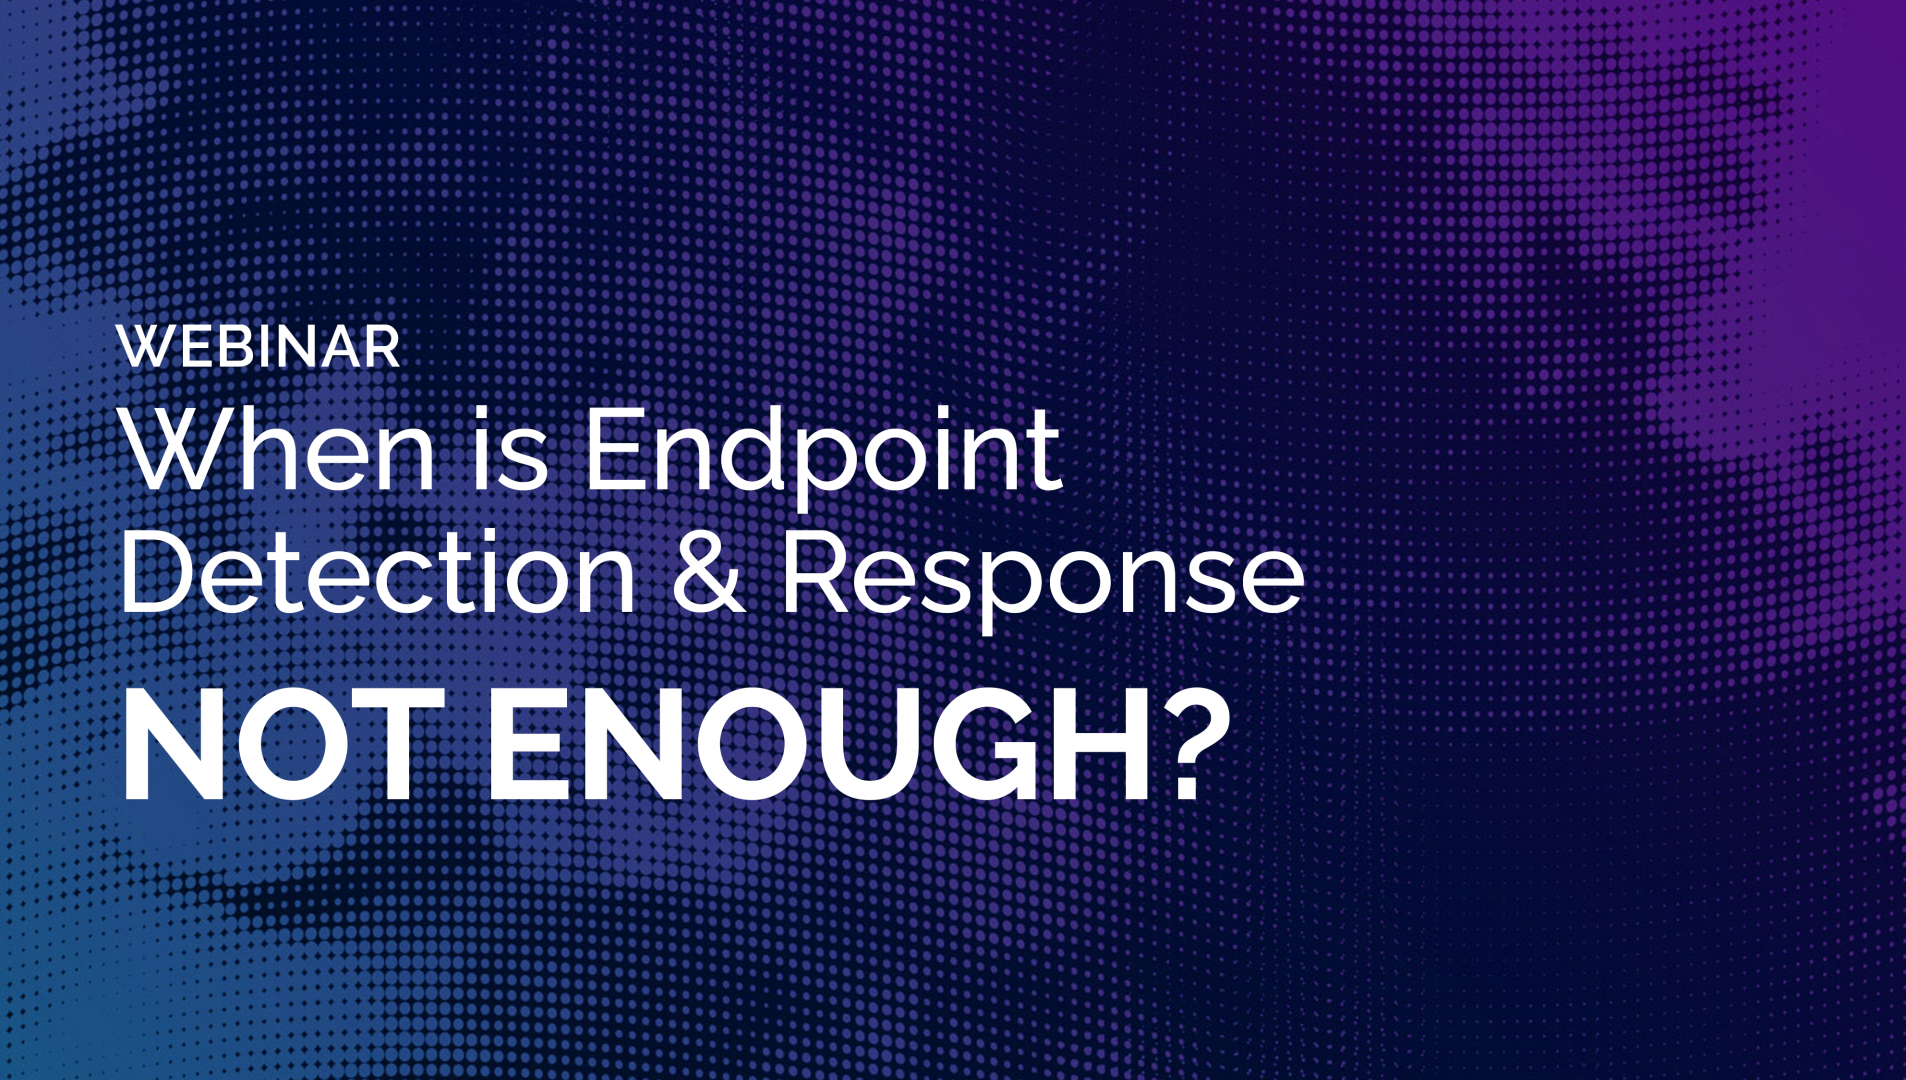 When is Endpoint Detection & Response Not Enough?